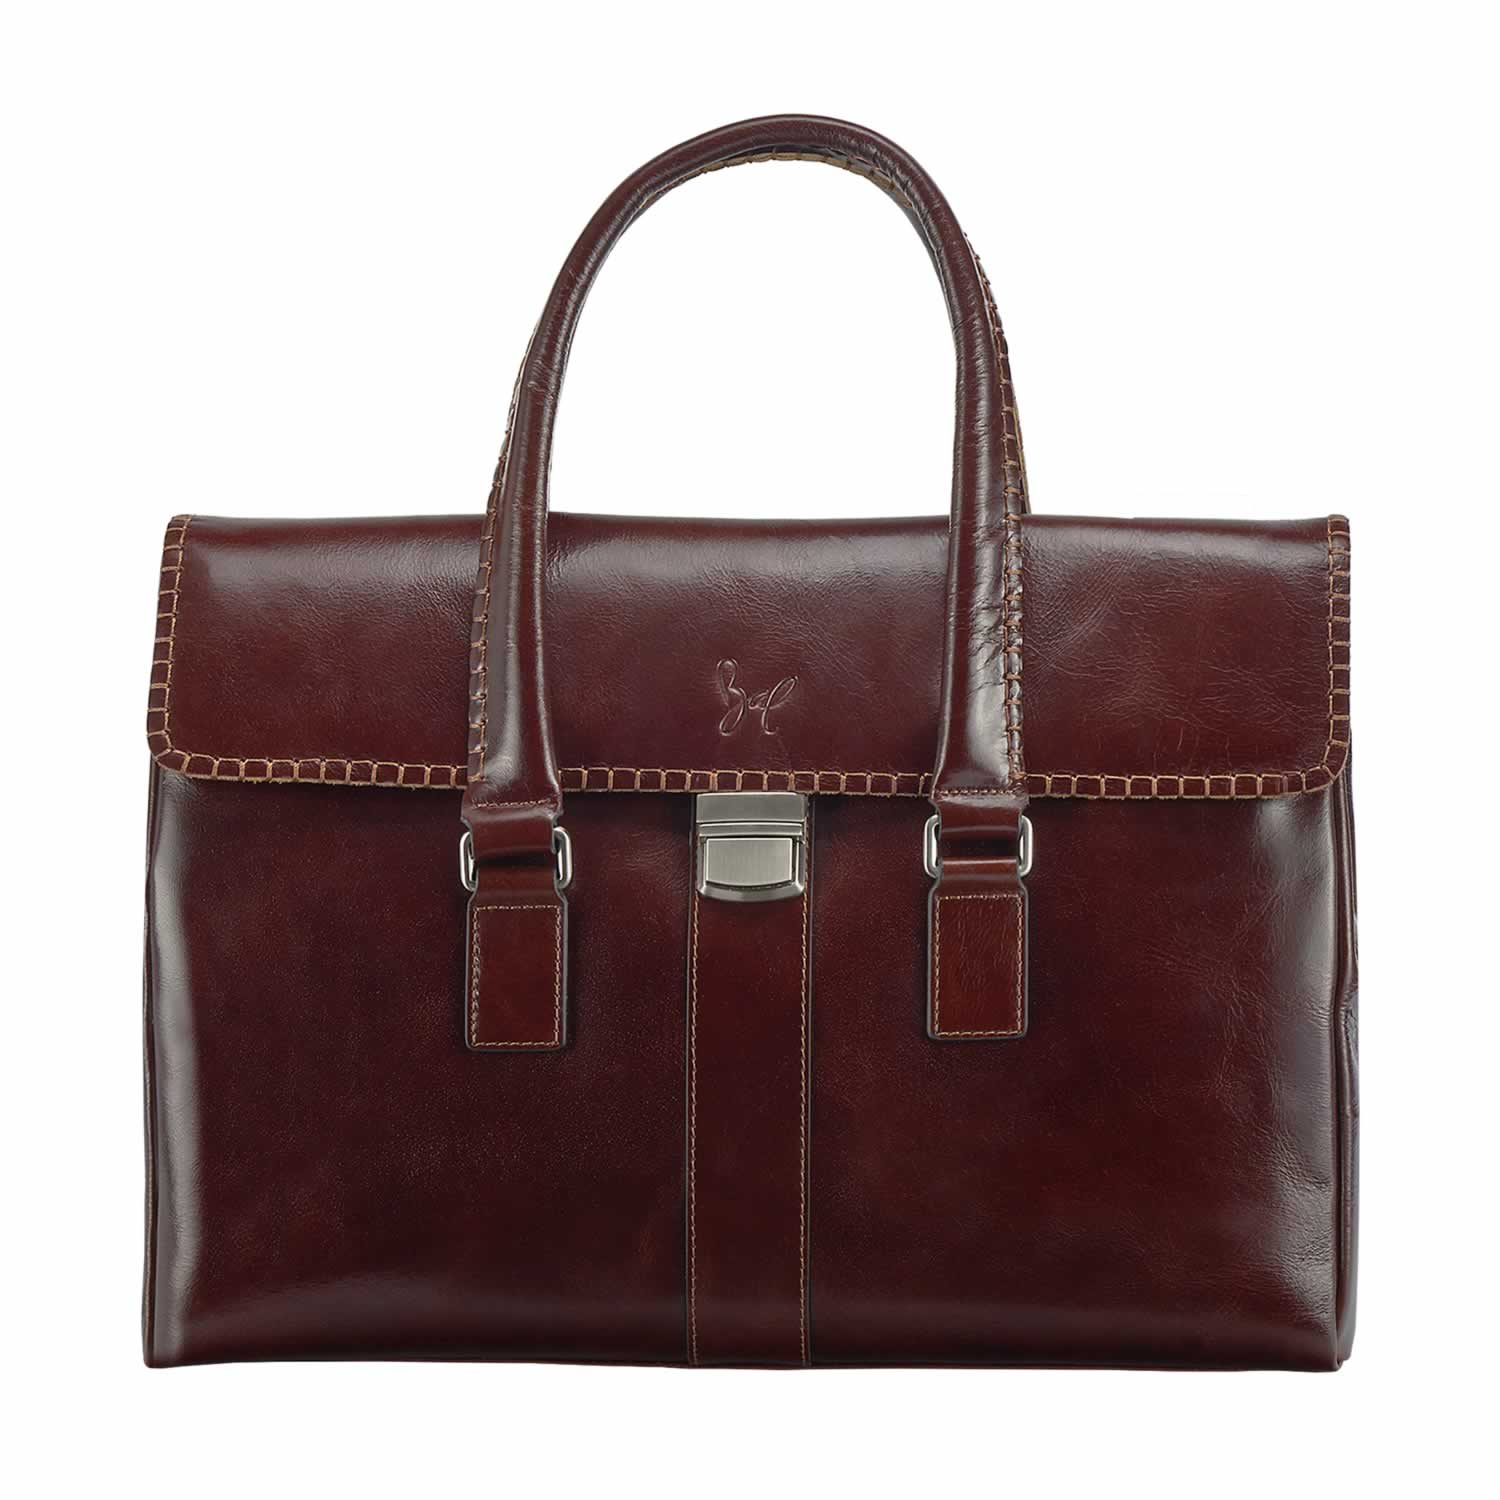 450483a7ac802d Rohit Bal Leather Briefcase Office Bag for Men